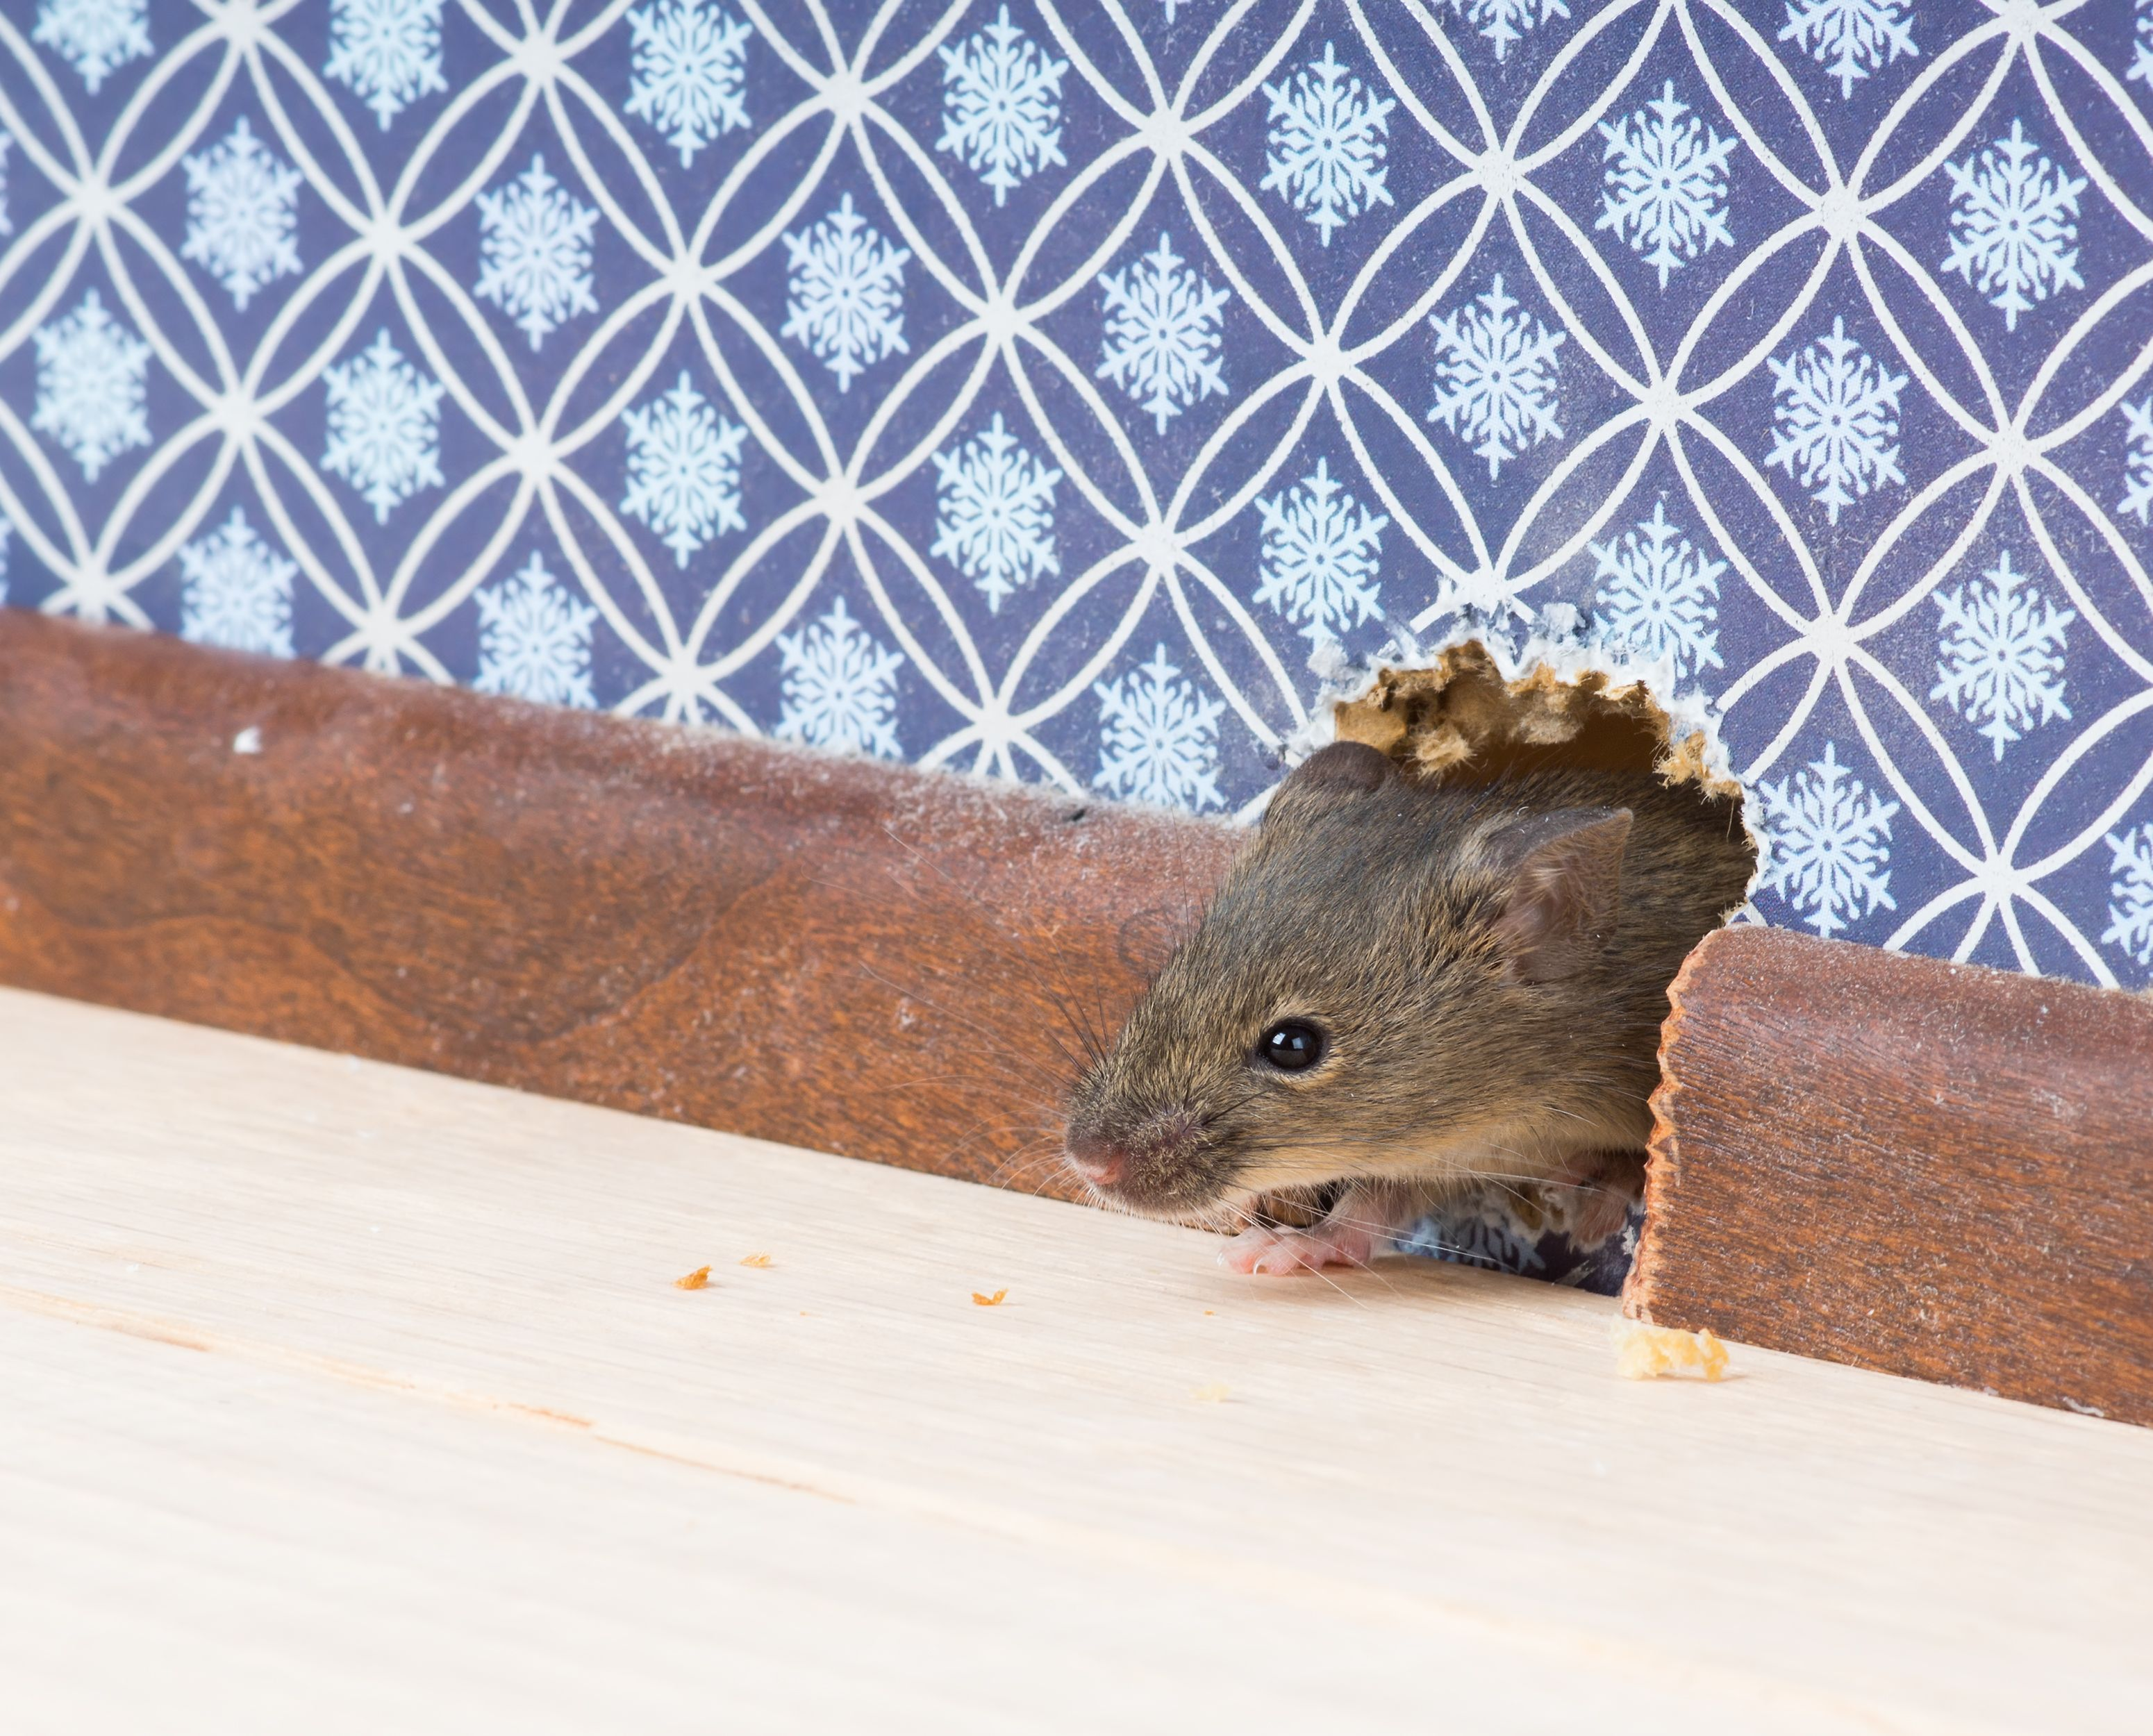 Learn How to Catch a Mouse and Keep Mice Out of Your Home with These Tips